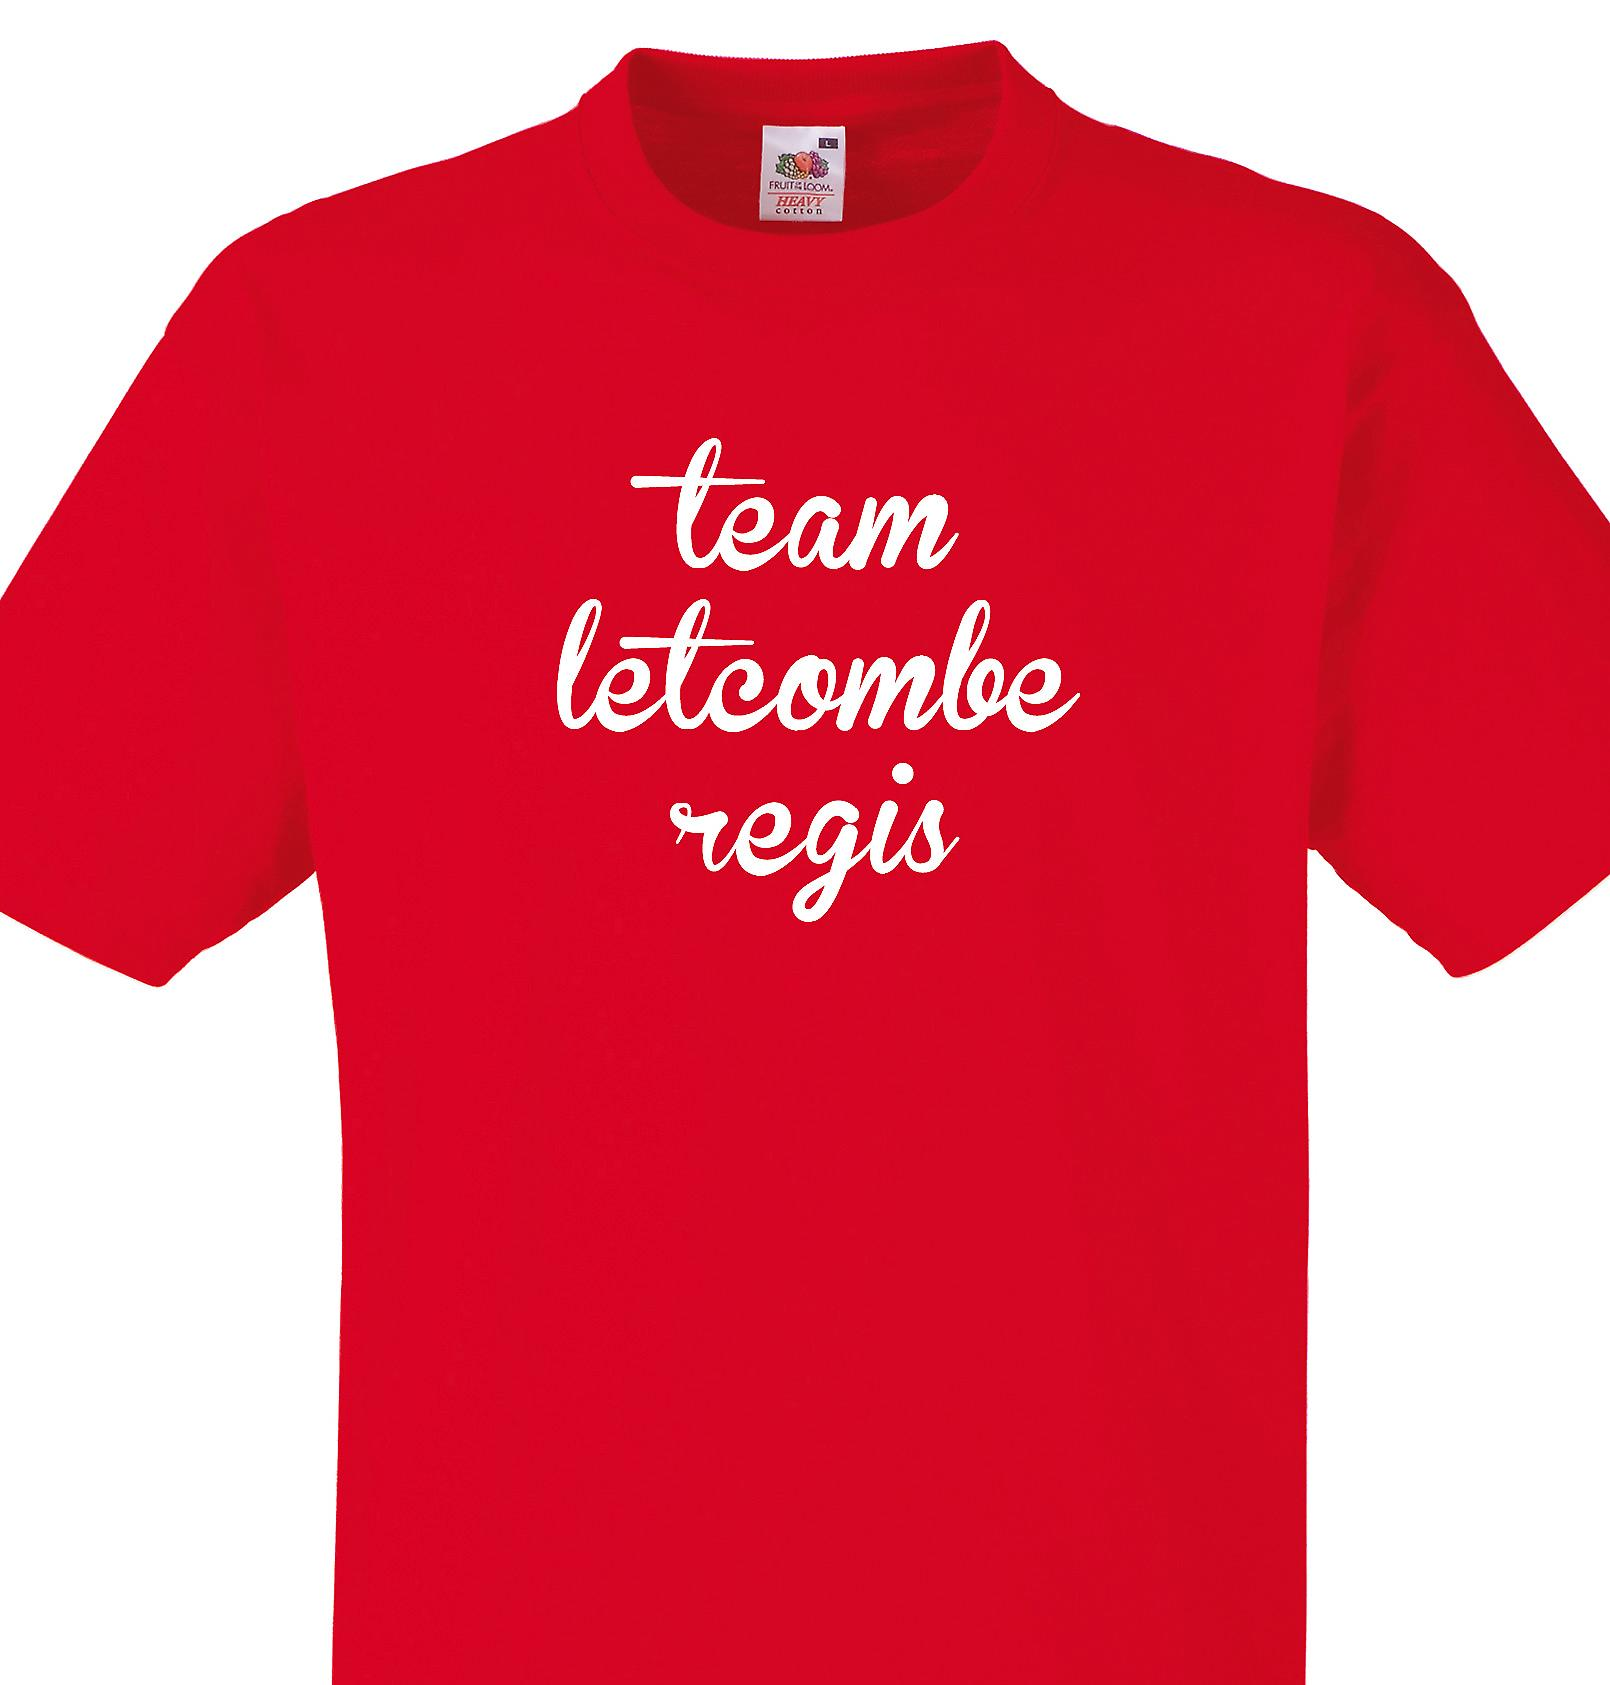 Team Letcombe regis Red T shirt